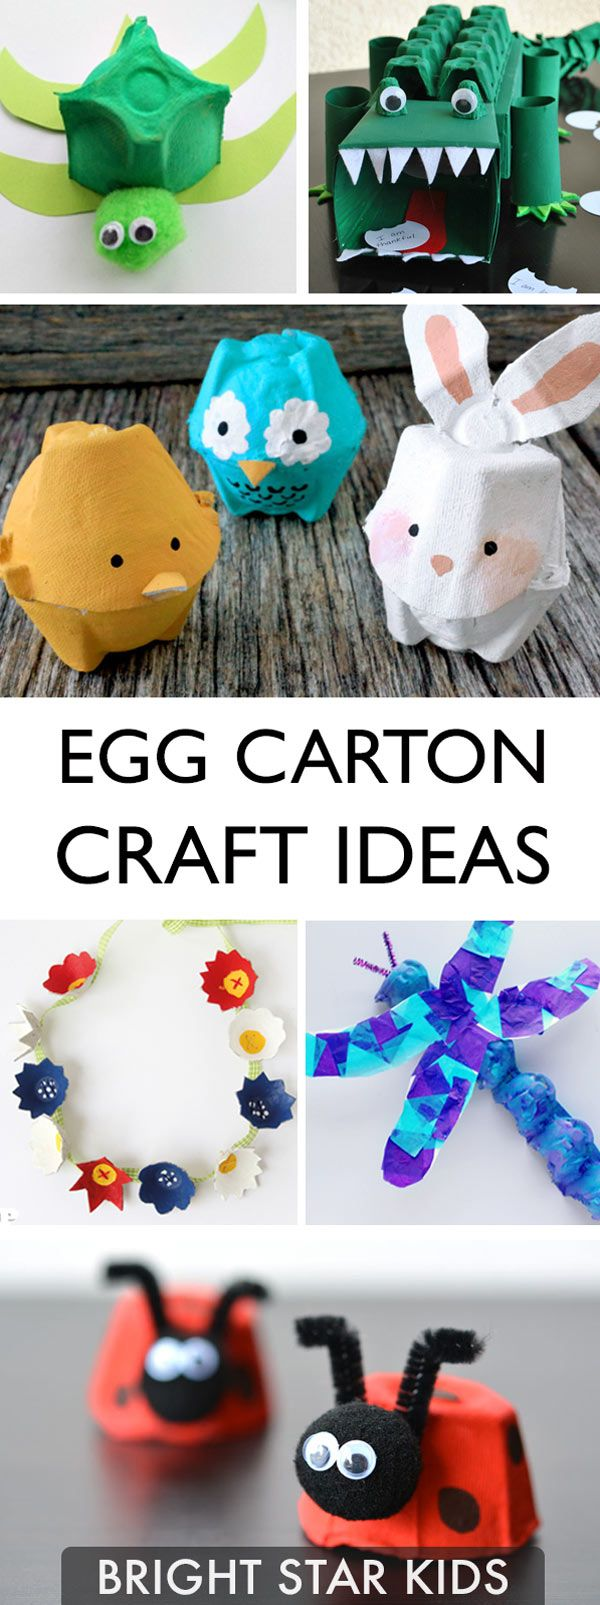 The 25 best egg carton crafts ideas on pinterest egg Egg carton flowers ideas